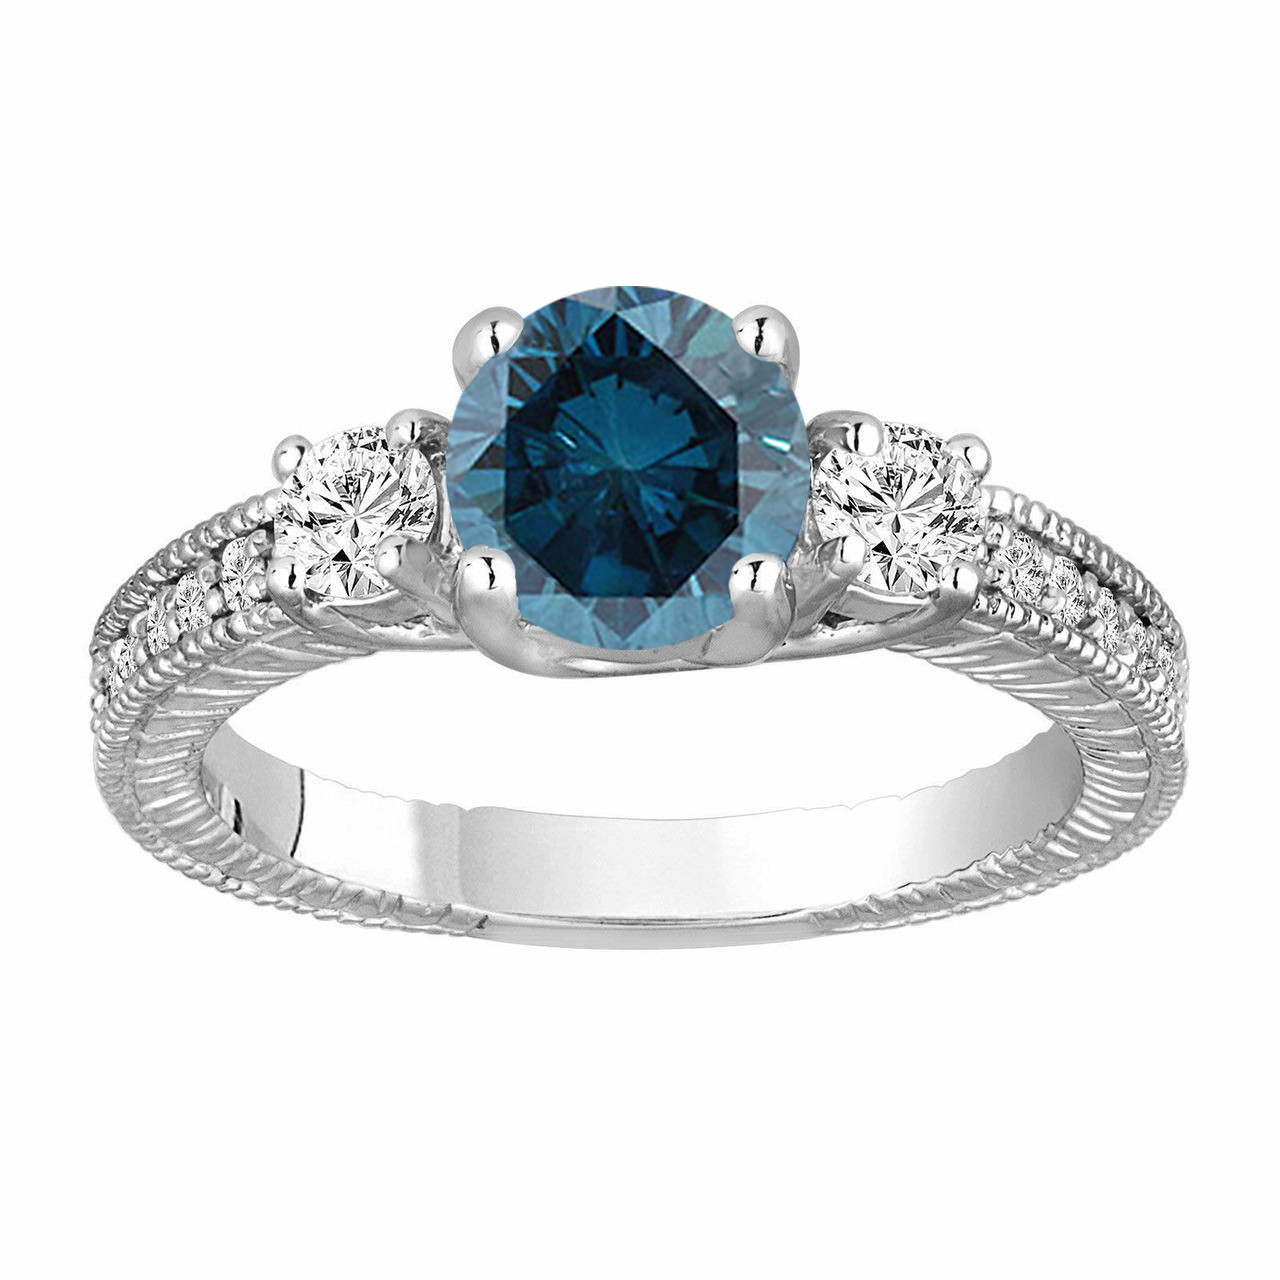 ced5f5fcfc48e Blue Diamond Engagement Ring 1.38 Carat 14K White Gold Vintage Antique  Style Engraved Handmade